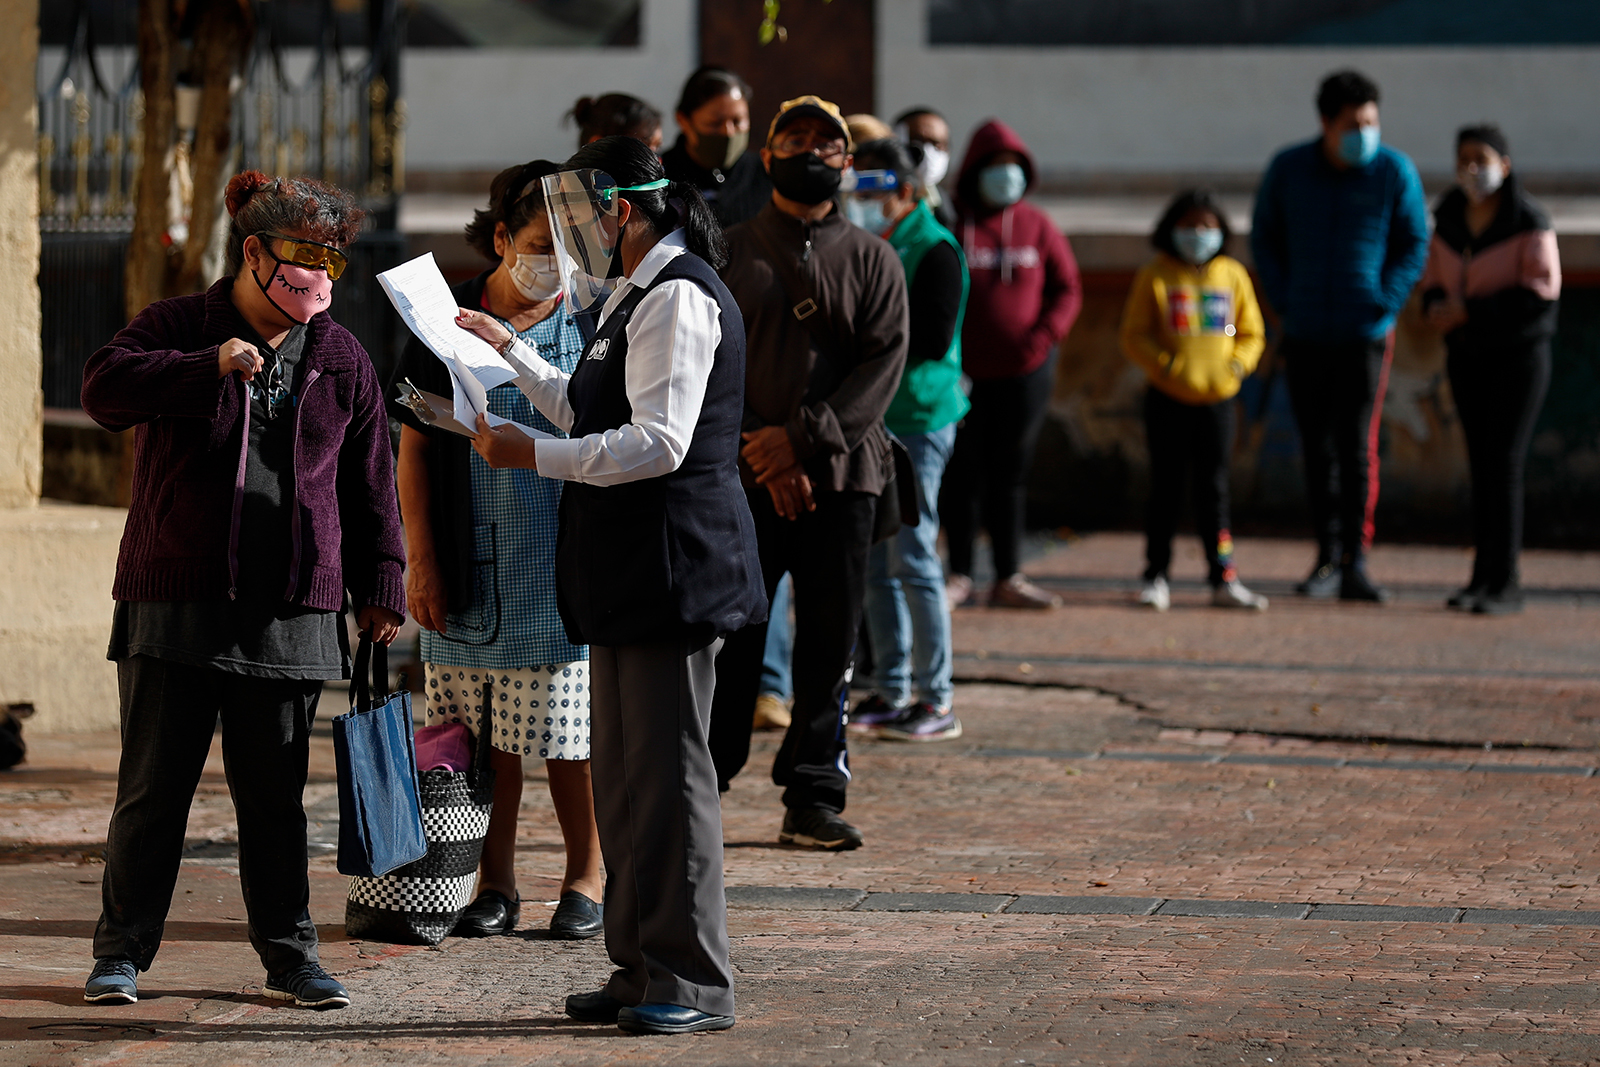 A health department worker collects patient data from people waiting in line for Covid-19 testing, at a mobile diagnostic tent in Mexico City on July 24.